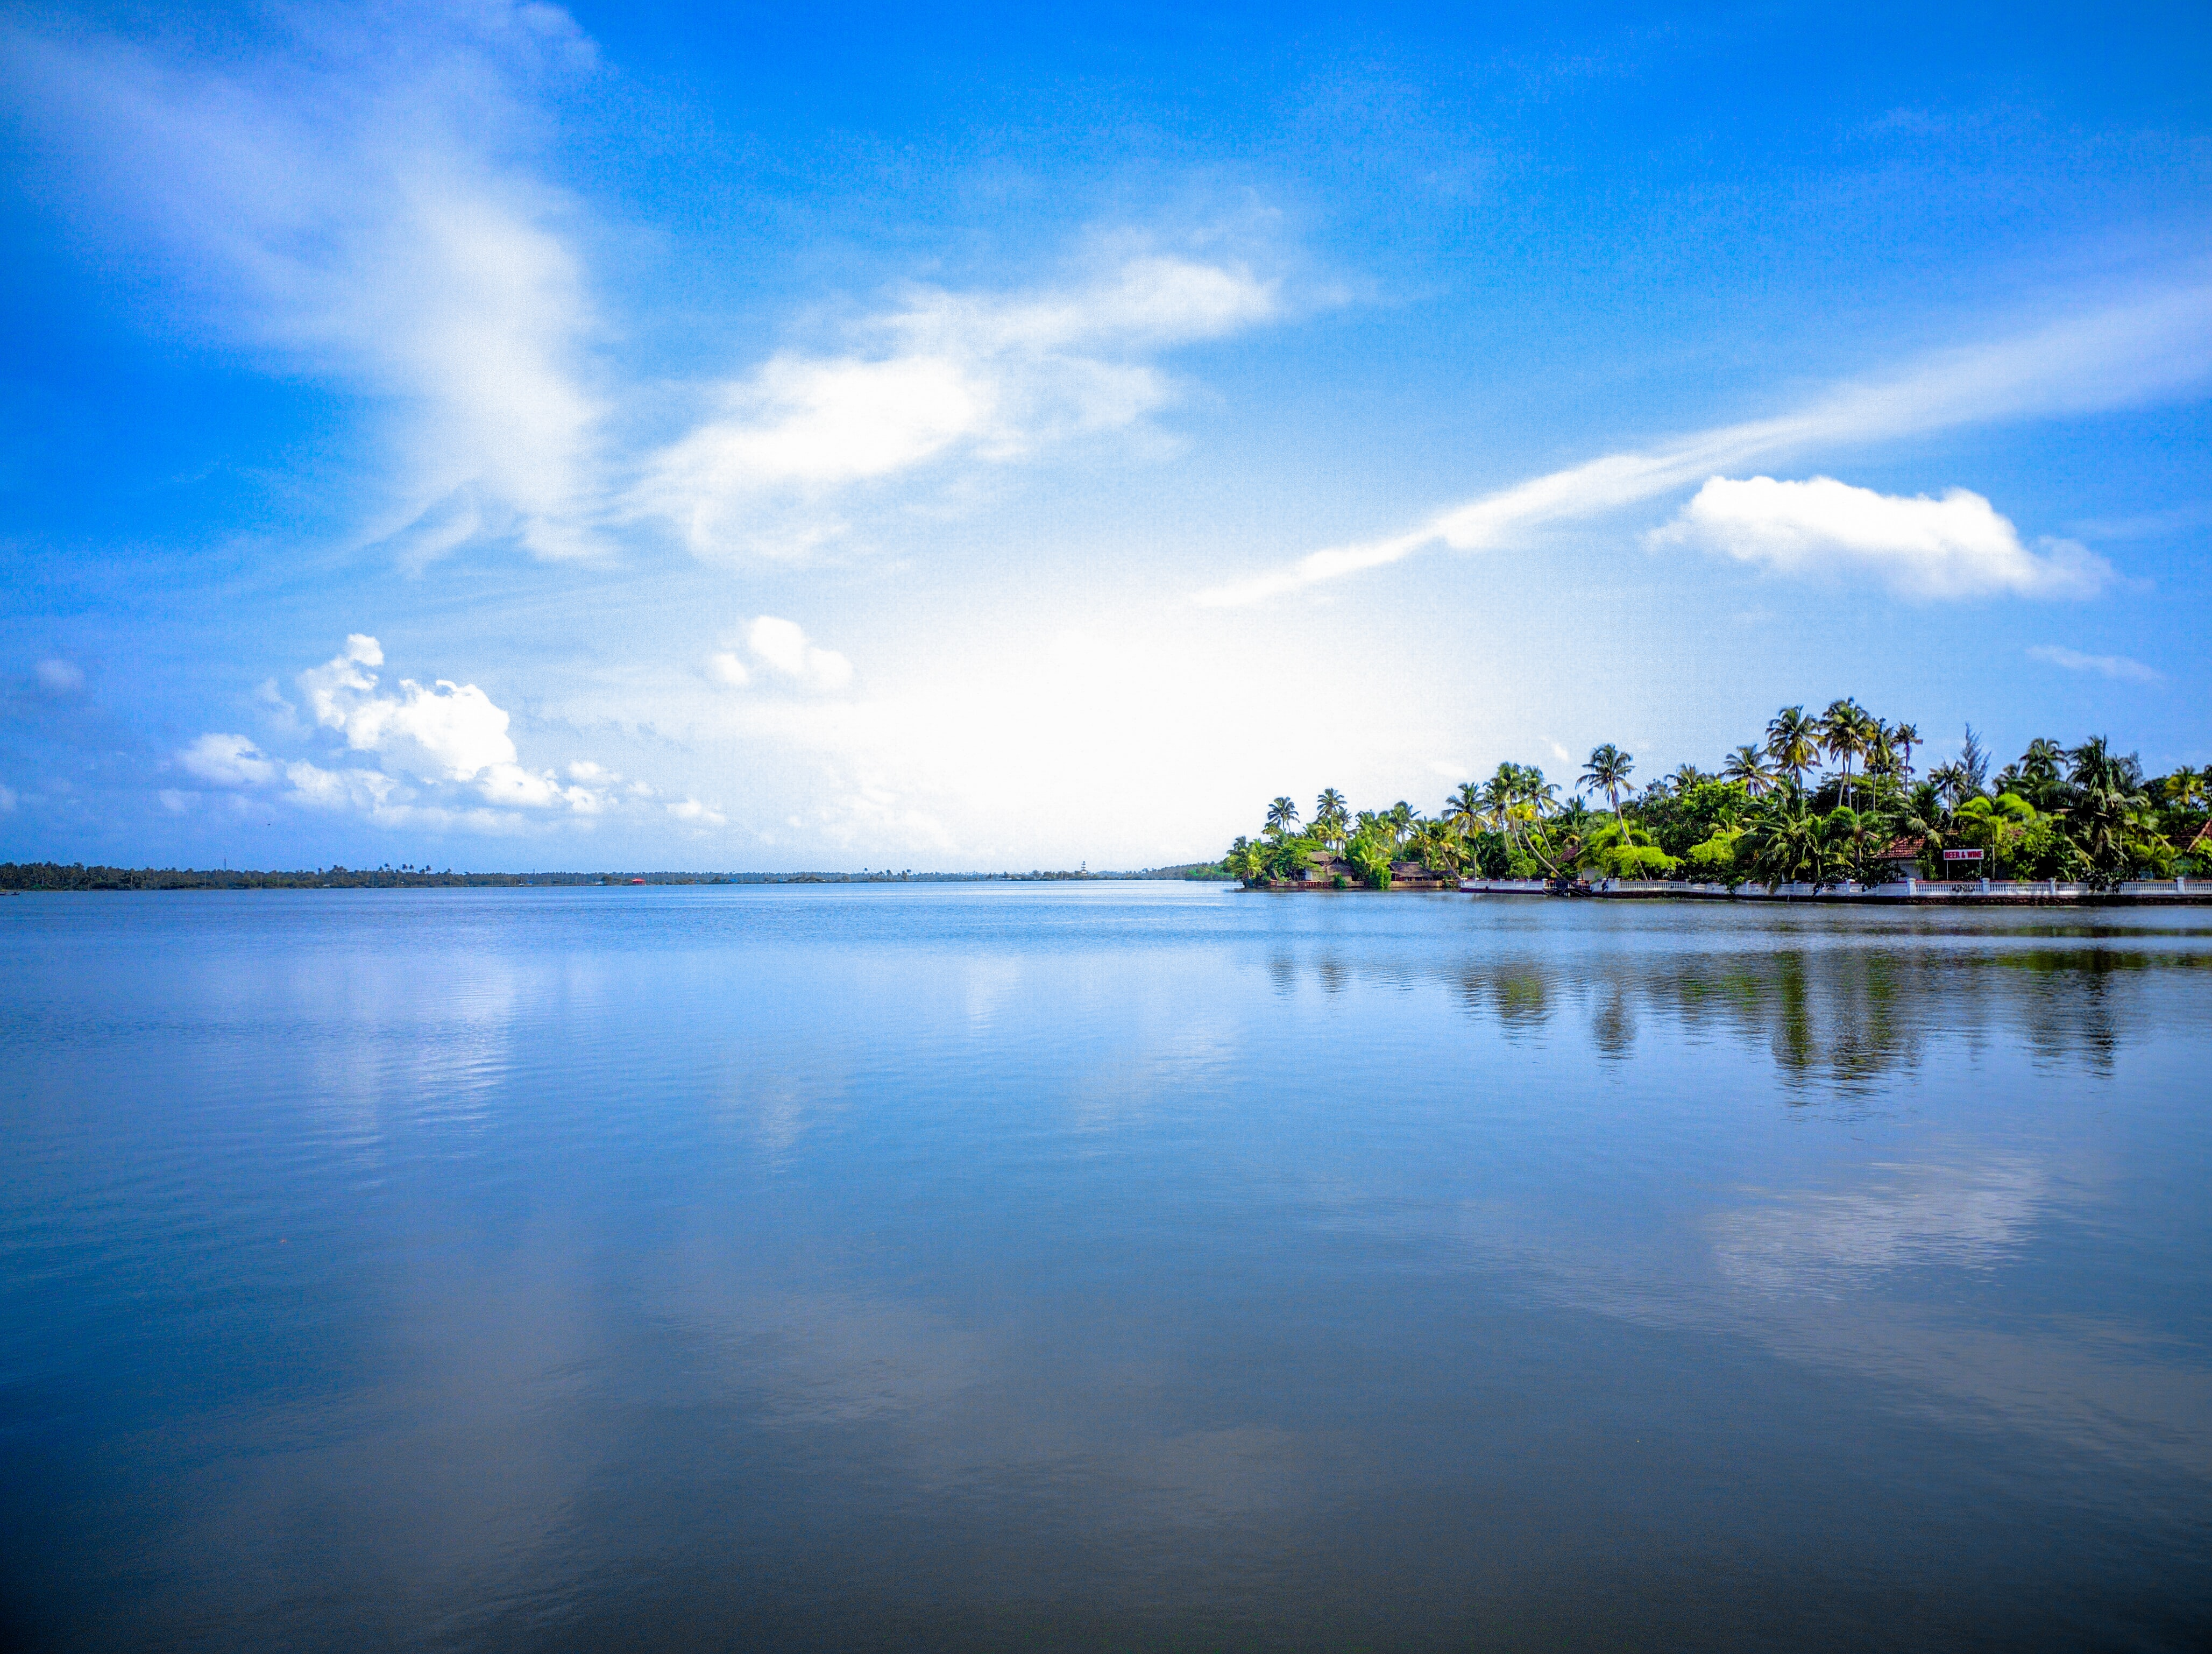 151348 download wallpaper Nature, Sky, Palms, Island, Cloud screensavers and pictures for free